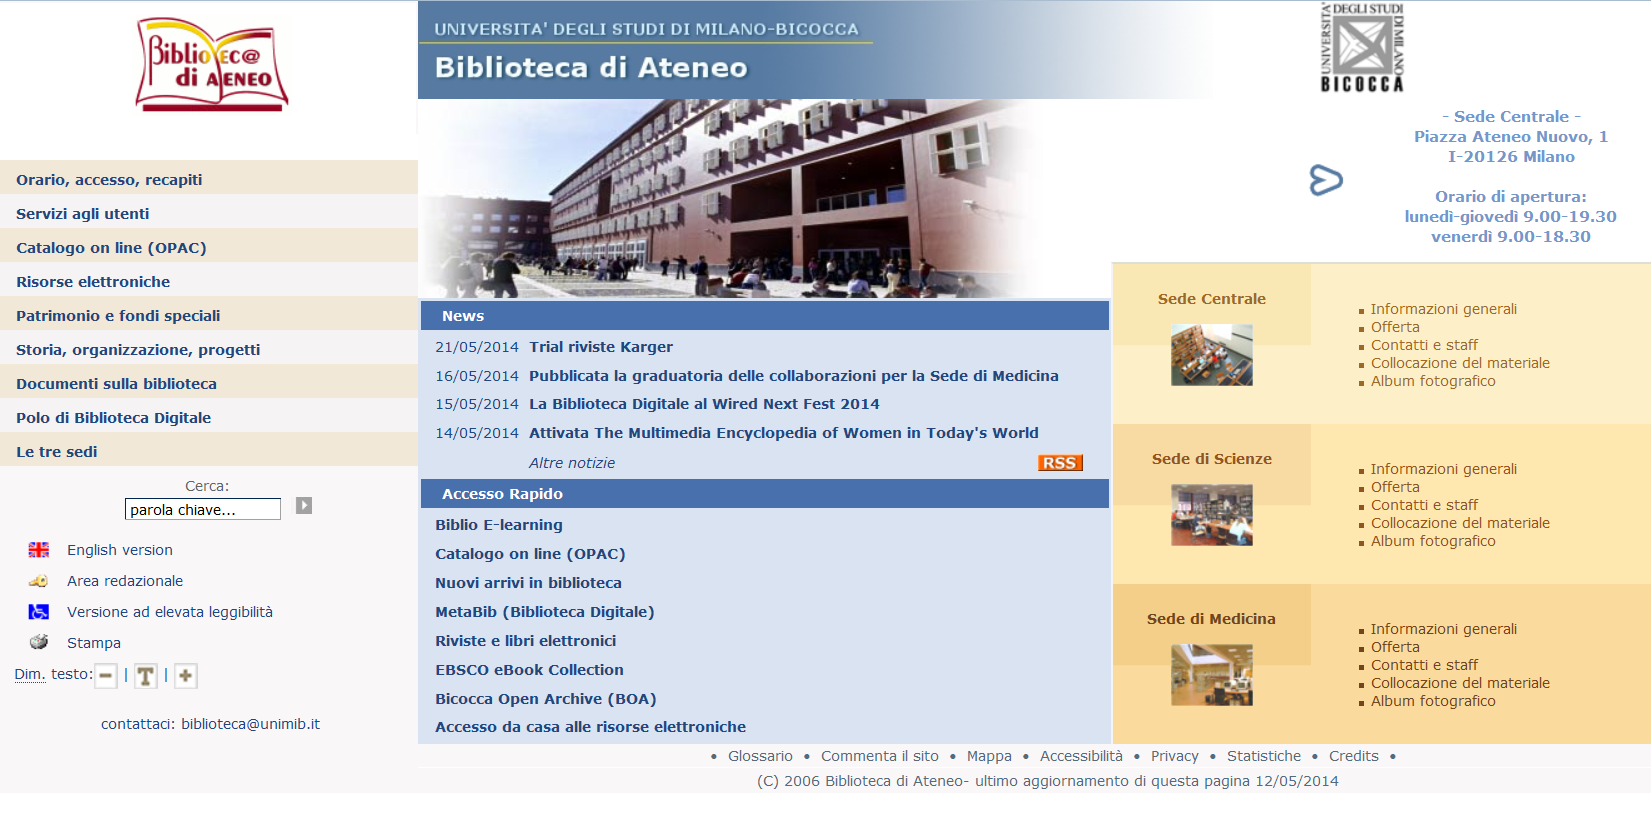 Online Communication Website The website of the University Library was created in 2006 by a